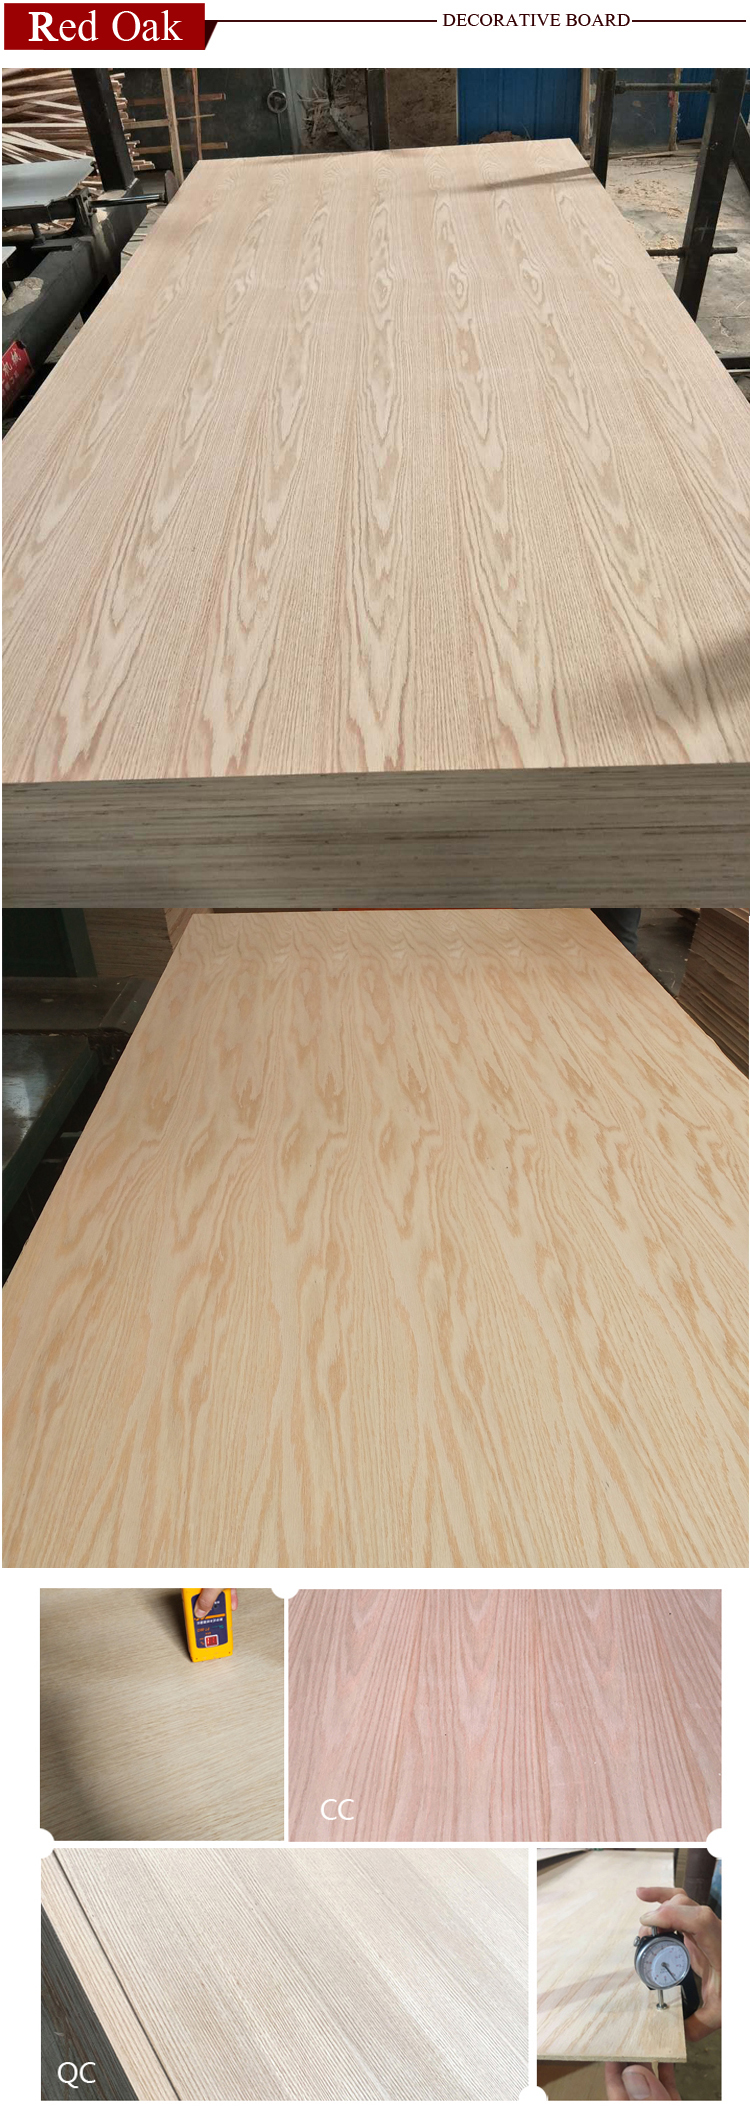 Factory price red oak fancy veneer plywood faced mdf for middle east market